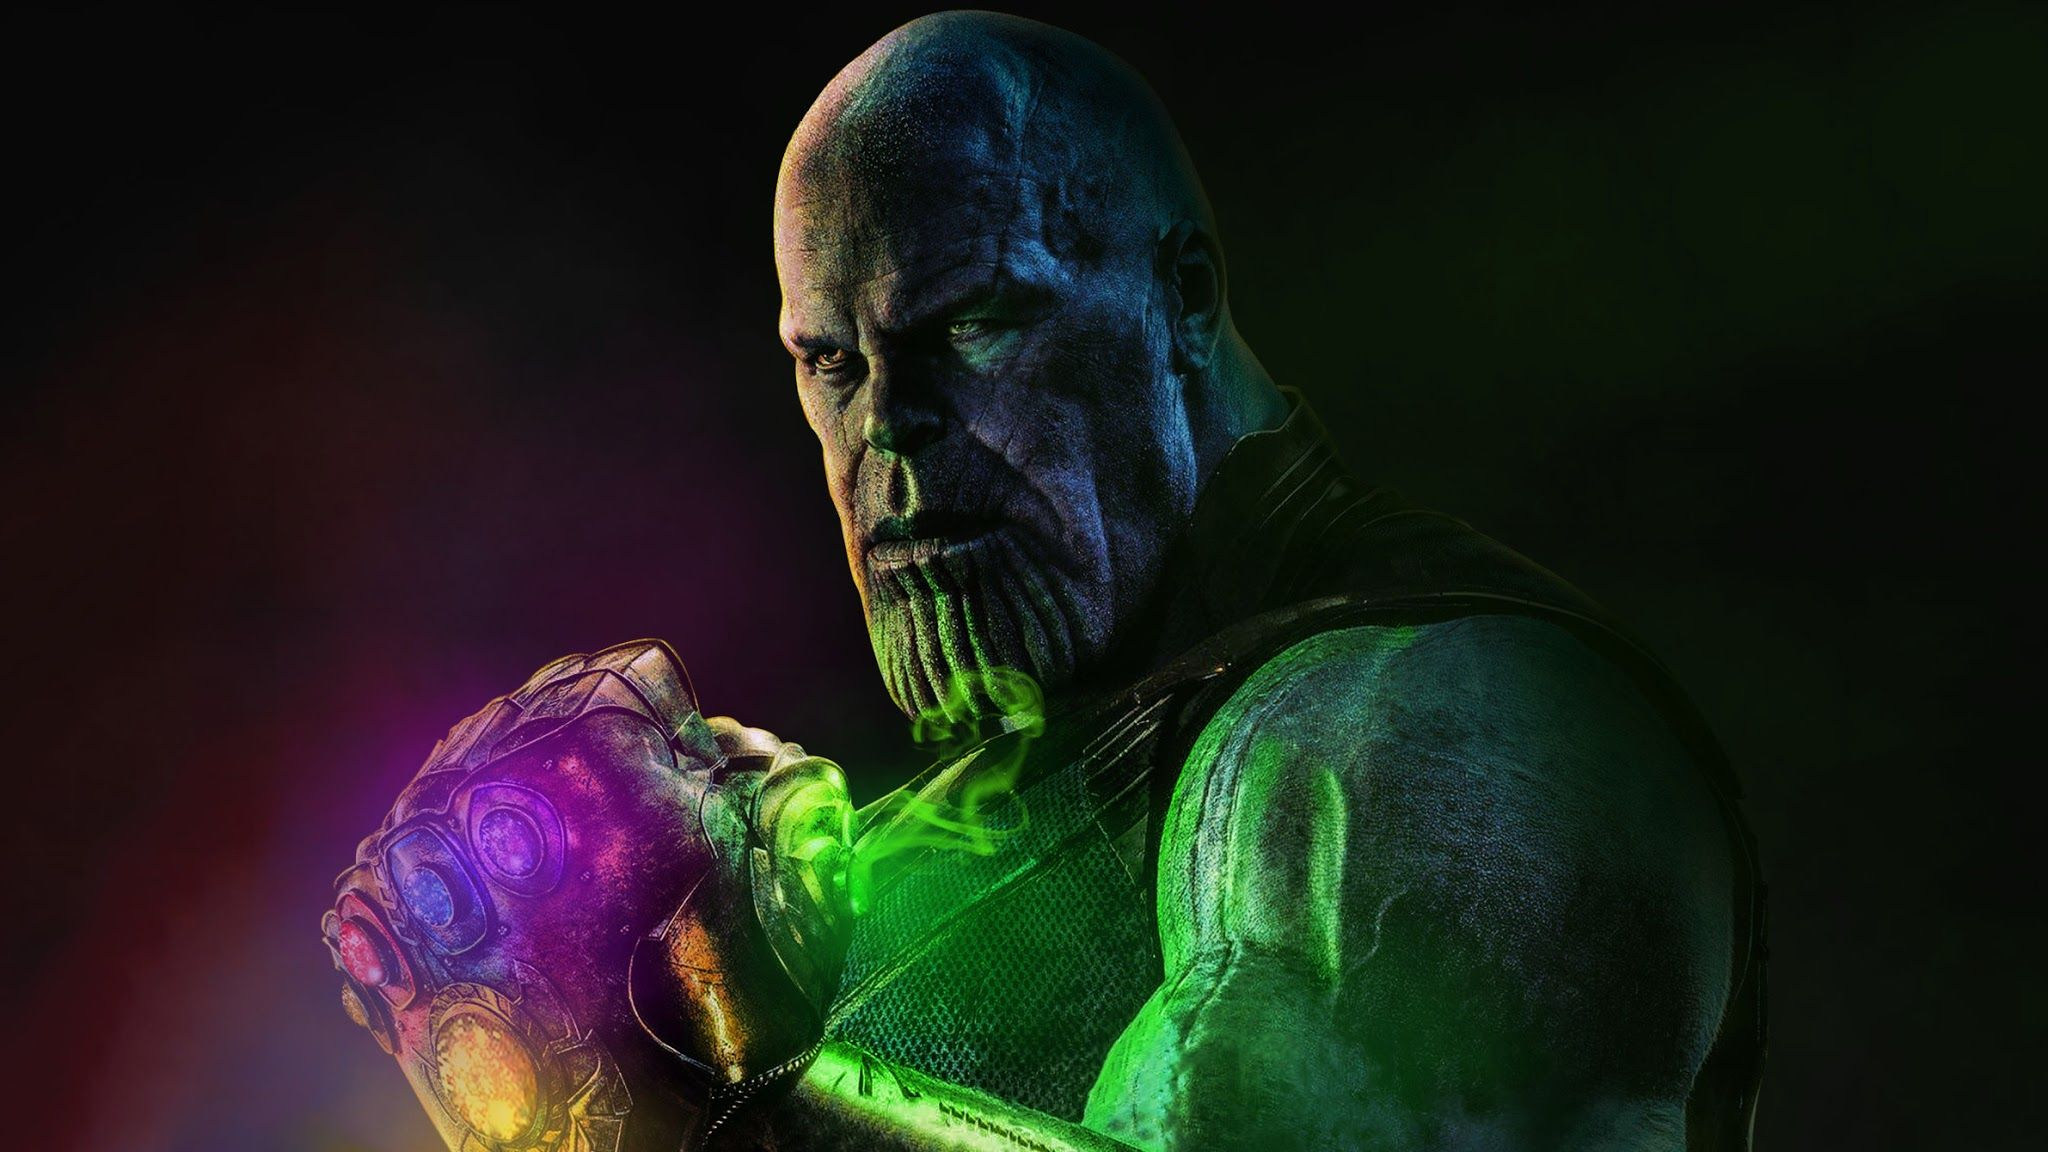 Thanos With Gauntlet Infinity Stones Hd Wallpapers Pinterest